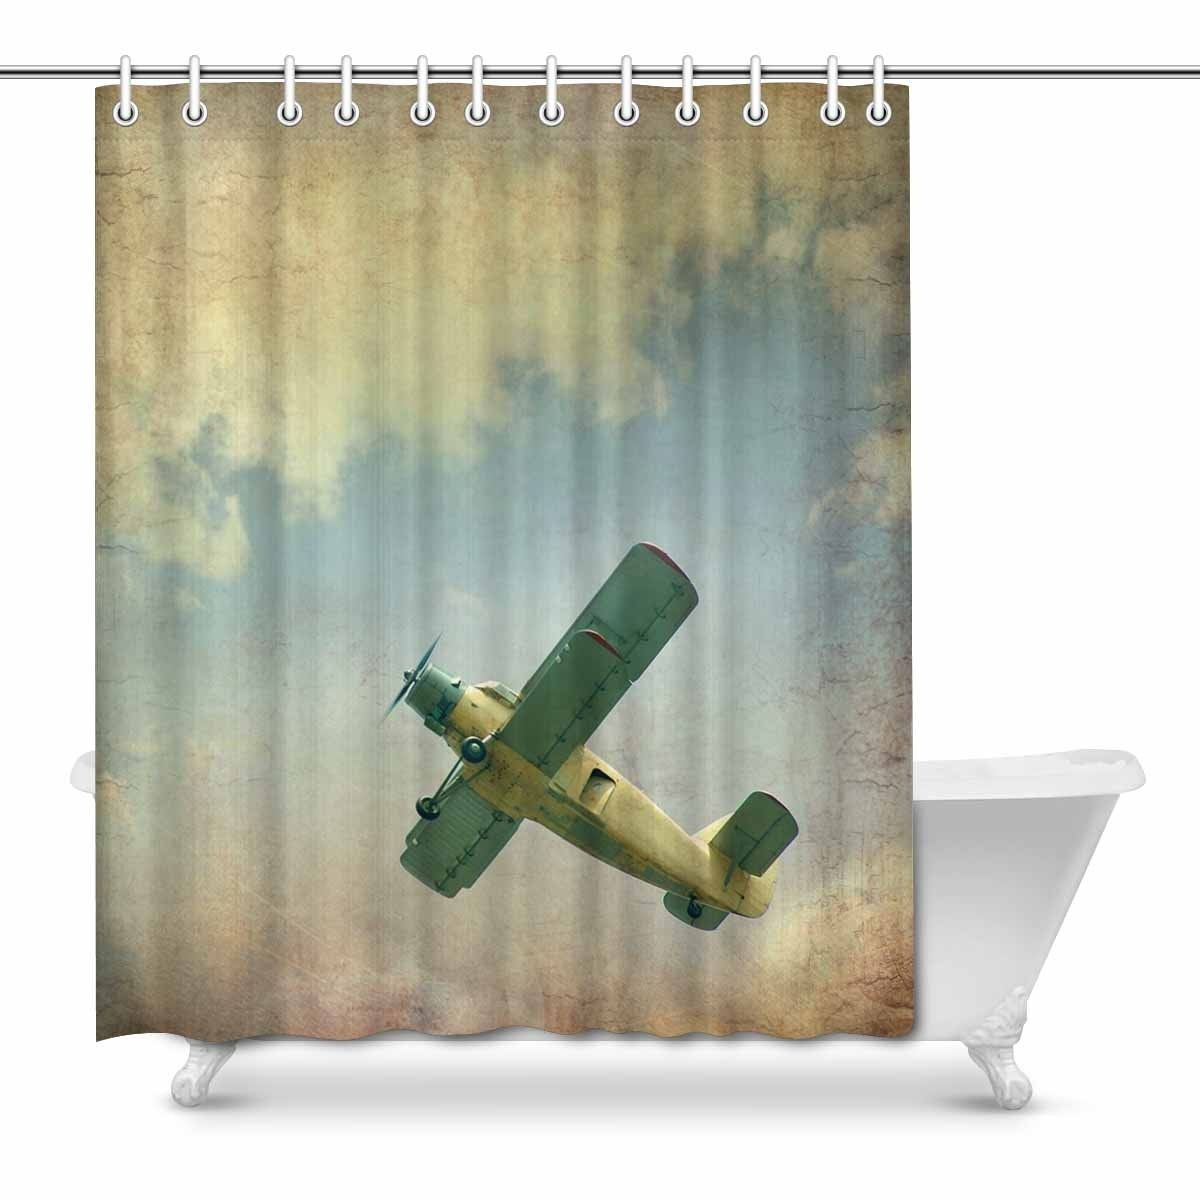 Cool Vintage Airplane House Decor Shower Curtain For Bathroom Decorative In 2020 Fabric Shower Curtains Vintage Airplane Decor Airplane Decor